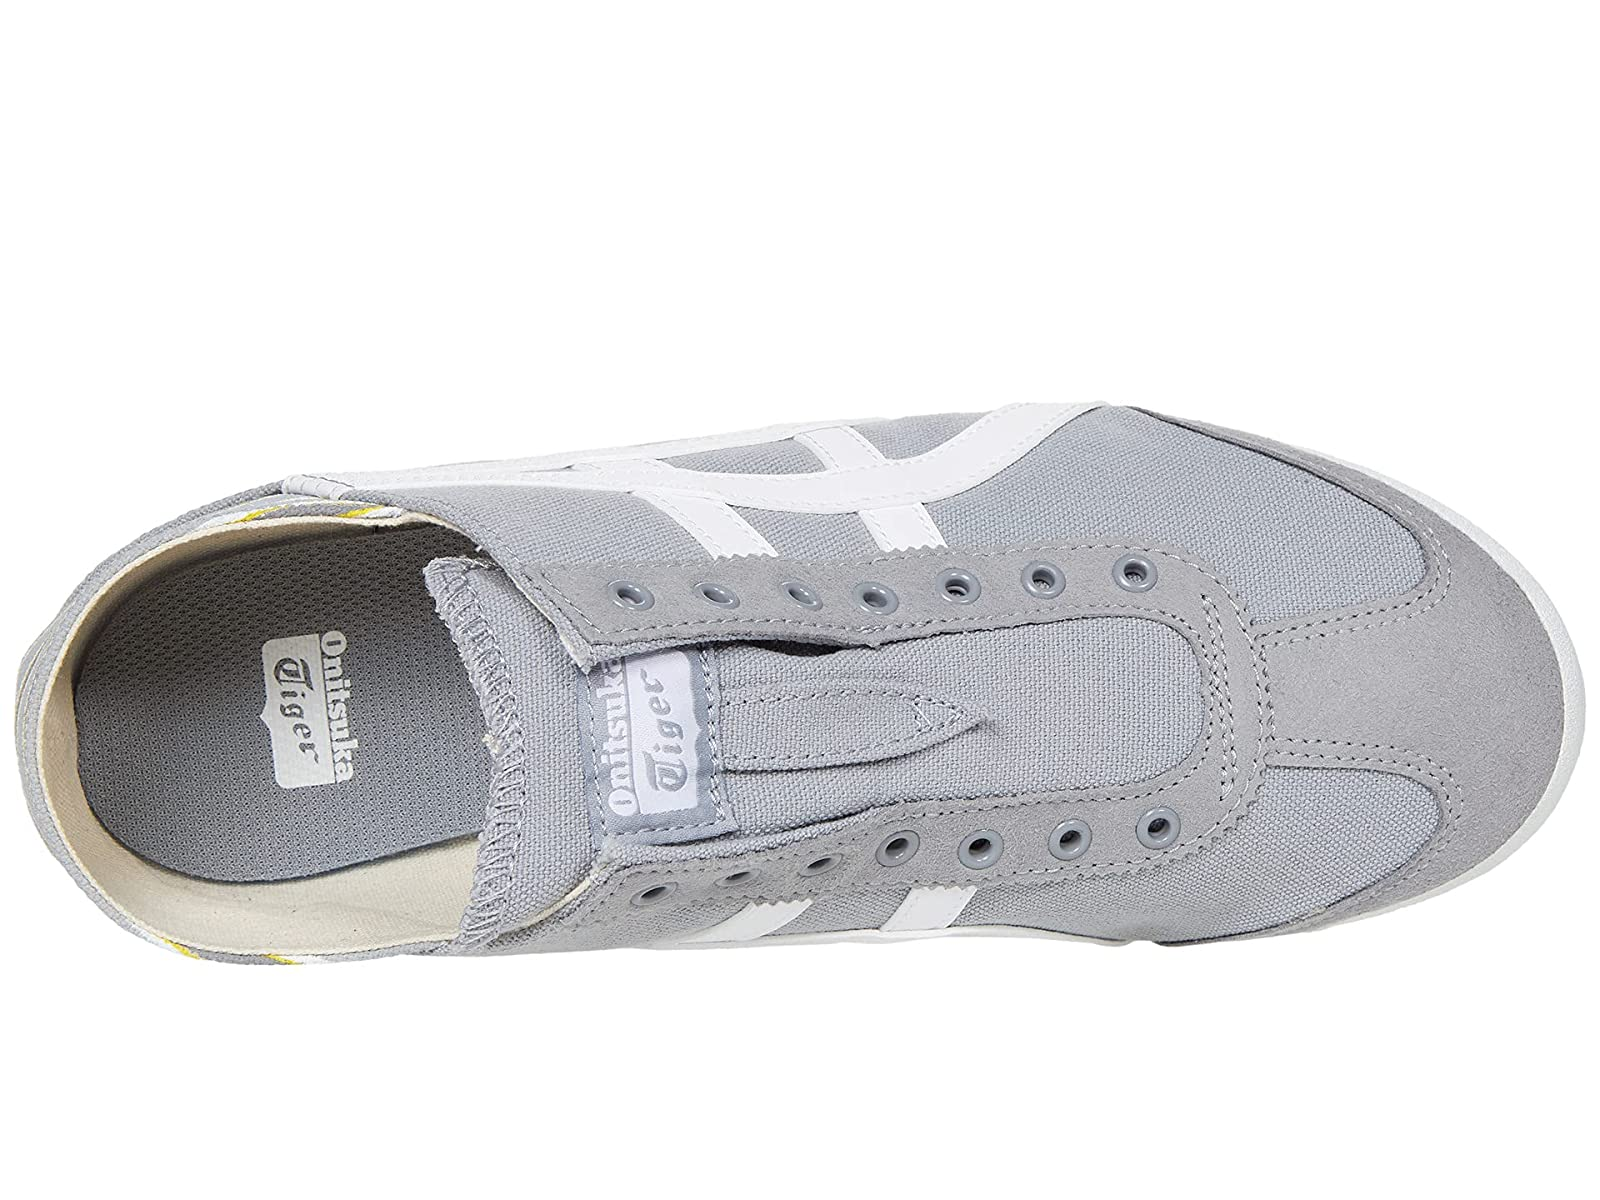 miniature 9 - Adulte Unisexe Baskets & Athlétique Chaussures Onitsuka Tiger Mexico 66 Paraty